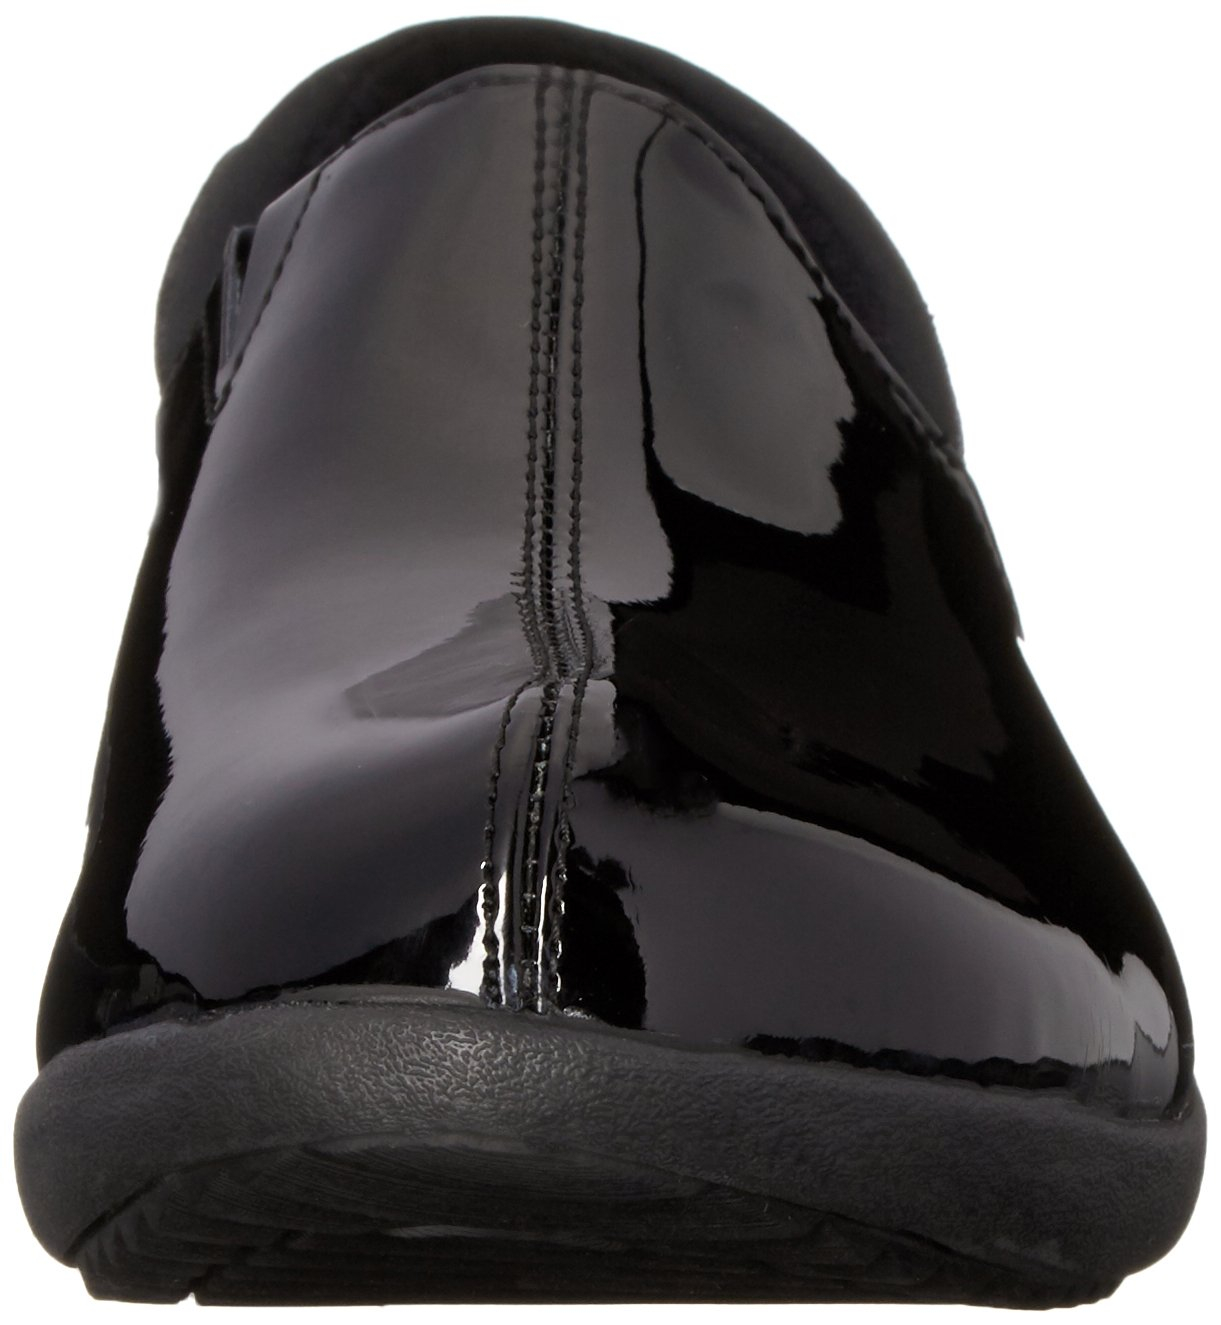 Skechers Women's Savor singular Mule, Black Patent Leather, 6 M US by Skechers (Image #4)